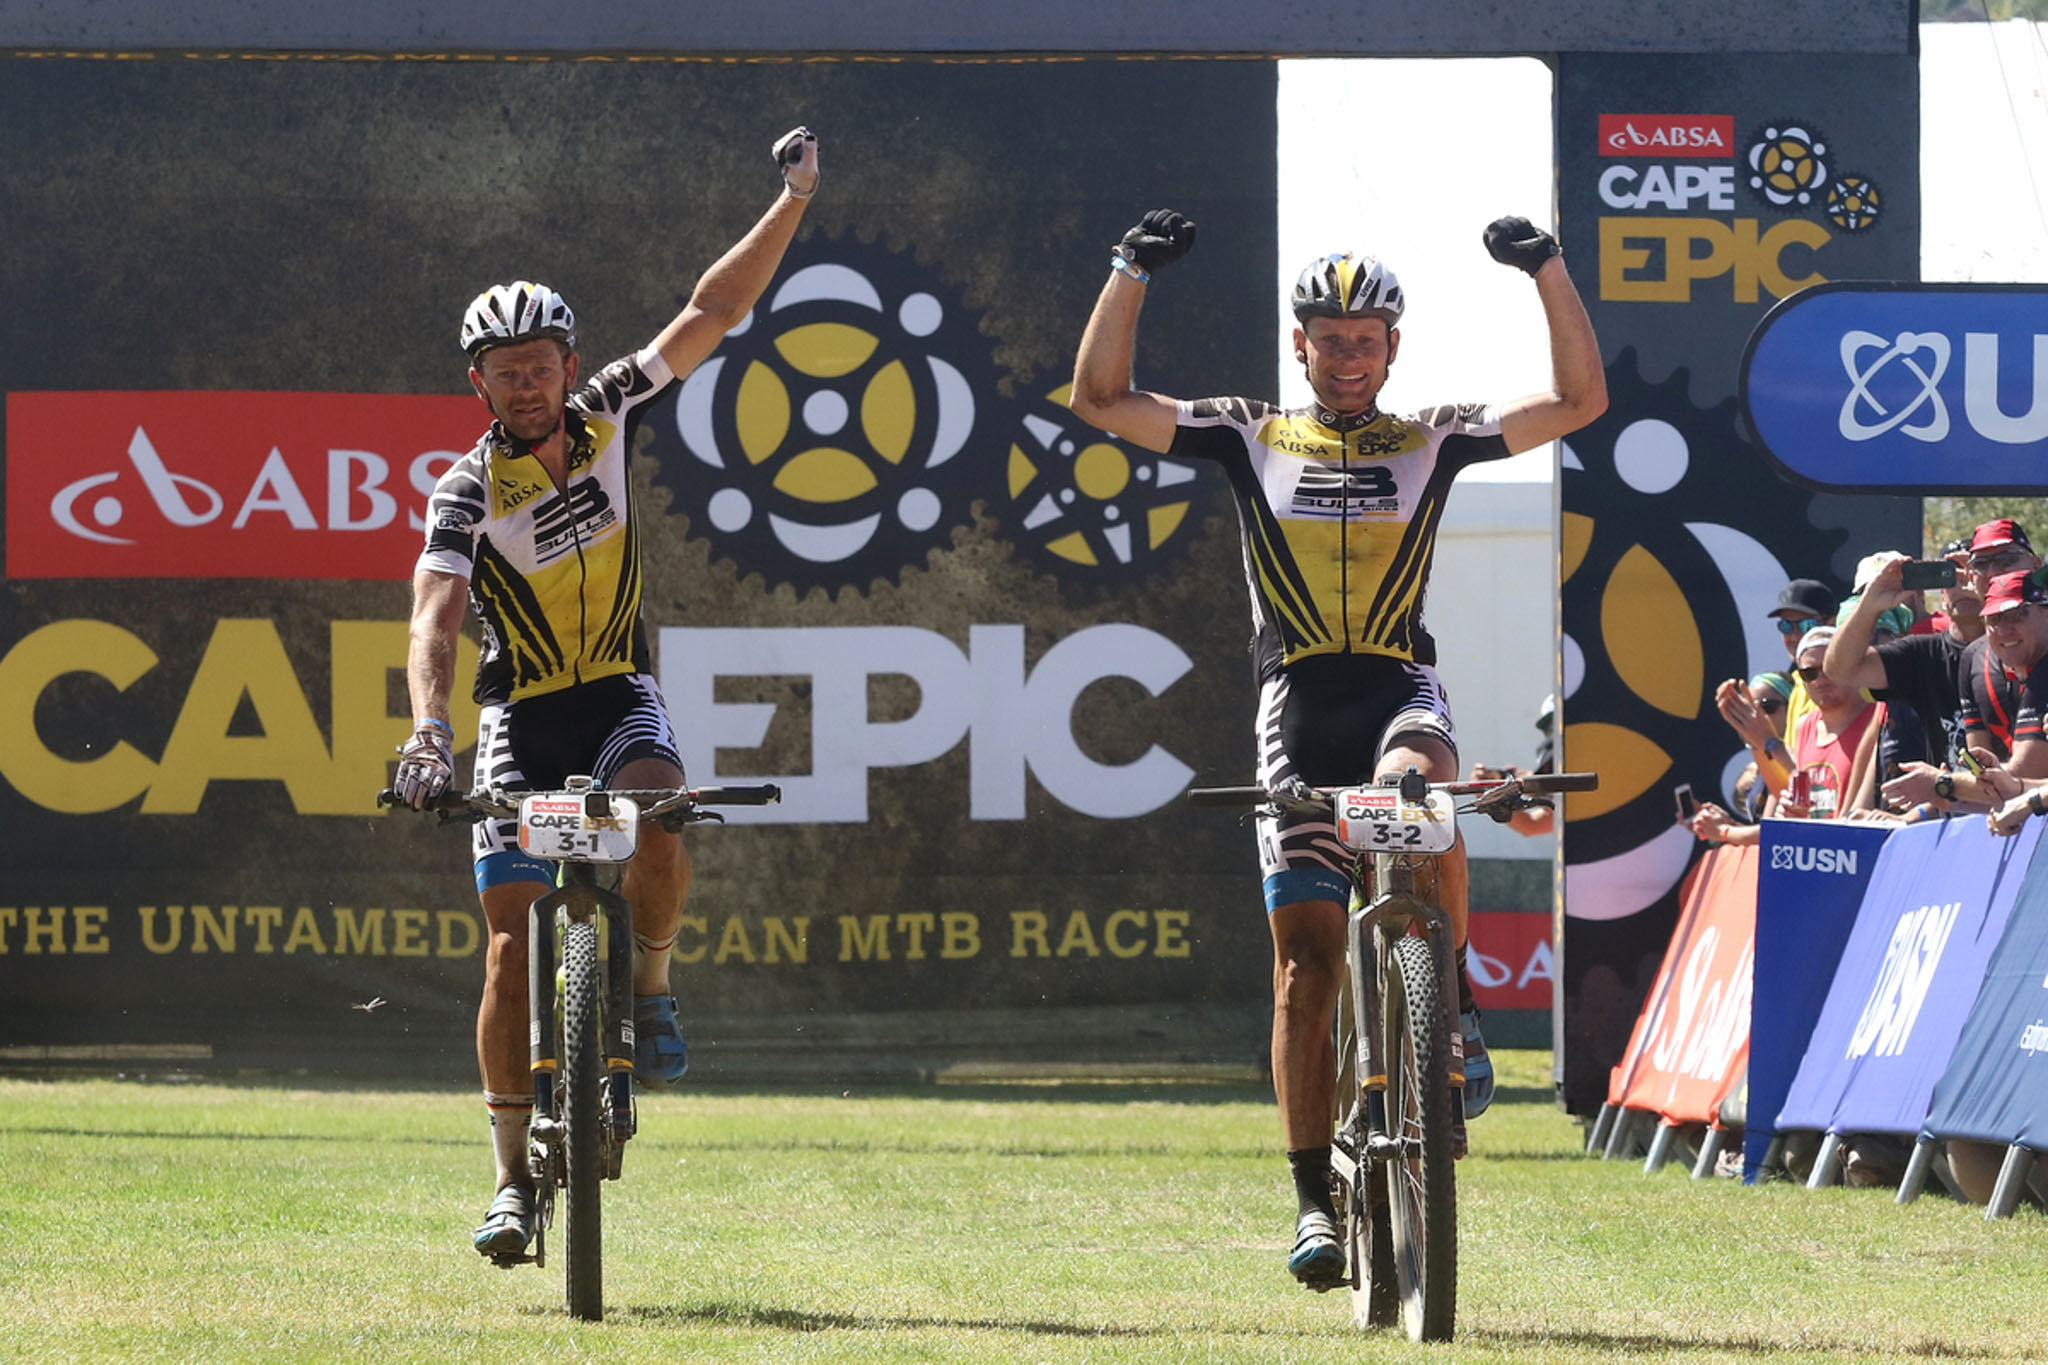 Karl Platt and Urs Huber of the Bulls celebrate winning stage 3 during stage 3 of the 2016 Absa Cape Epic Mountain Bike stage race held from Saronsberg Wine Estate in Tulbagh to the Cape Peninsula University of Technology in Wellington, South Africa on the 16th March 2016 Photo by Shaun Roy/Cape Epic/SPORTZPICS PLEASE ENSURE THE APPROPRIATE CREDIT IS GIVEN TO THE PHOTOGRAPHER AND SPORTZPICS ALONG WITH THE ABSA CAPE EPIC {ace2016}